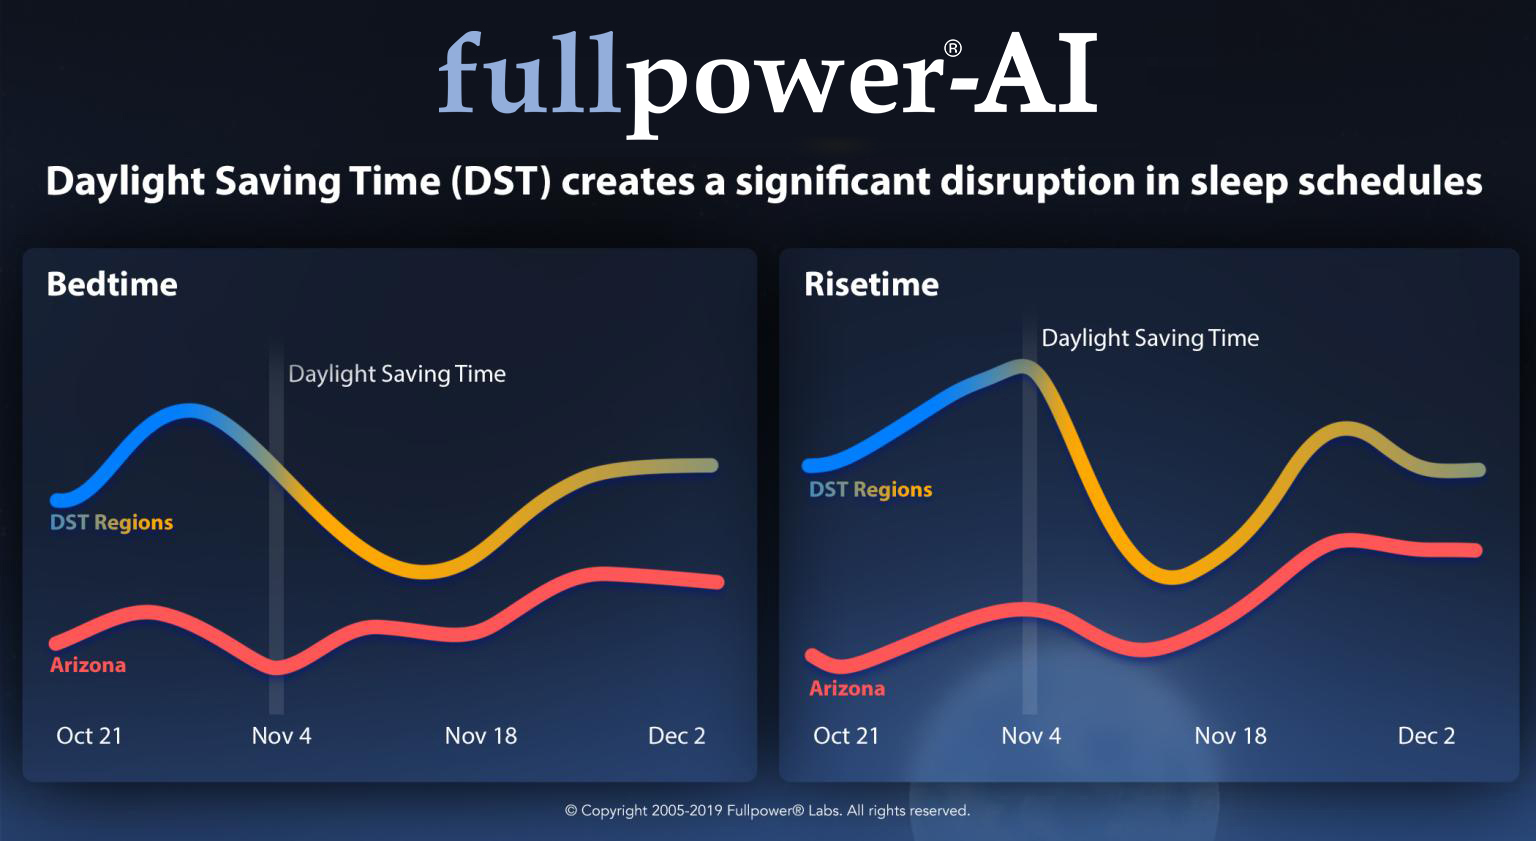 Daylight Saving Time (DST) creates a significant disruption in sleep schedules